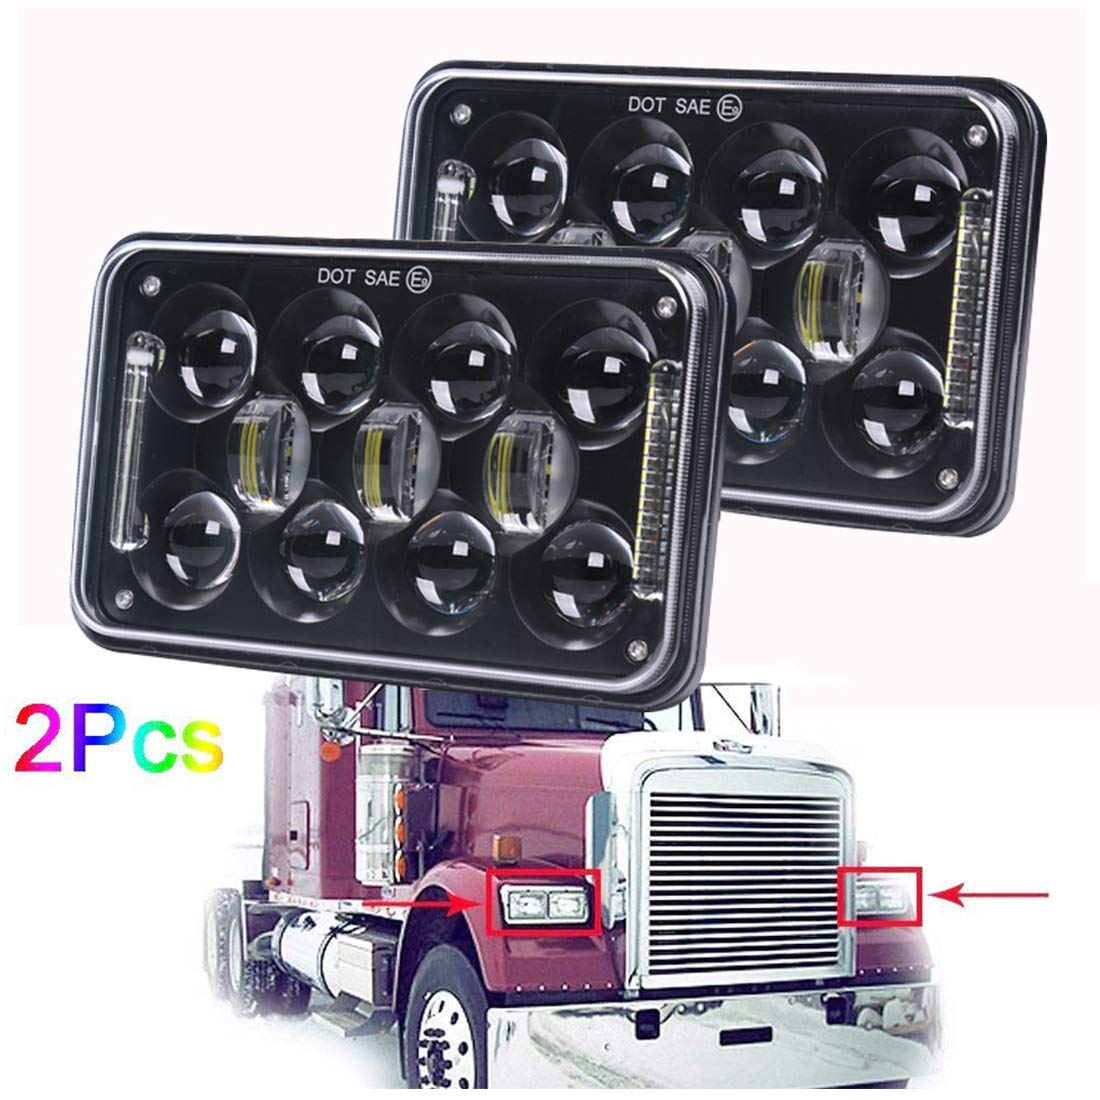 COWONE 60W CREE 4X6 inch Rectangular LED Headlights 5D Lens H4 Plug for H4651 H4652 H4656 H4666 H6545 Freightliner Kenworth Peterbilt International Volvo Sterling Western Star Mack(4Pcs)